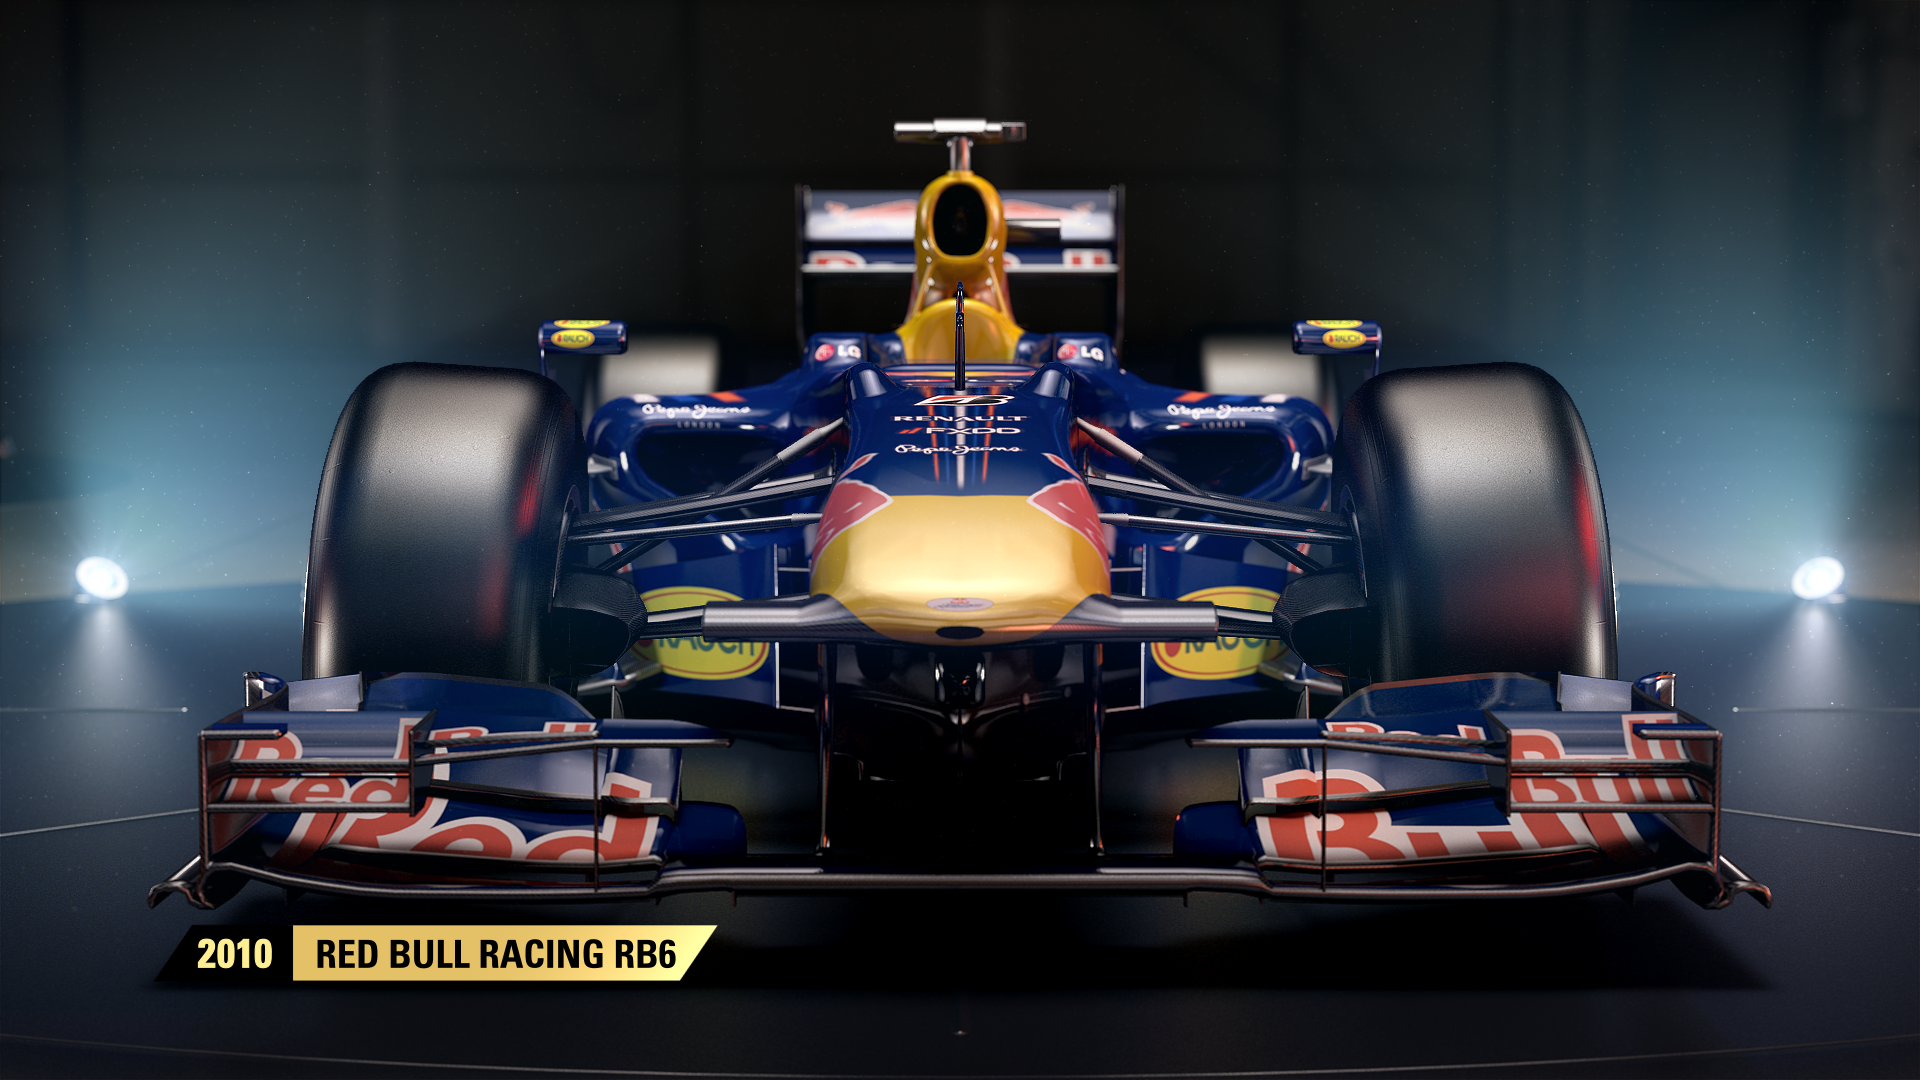 Red Bull Racing RB6 joins F1 2017's classic car roster